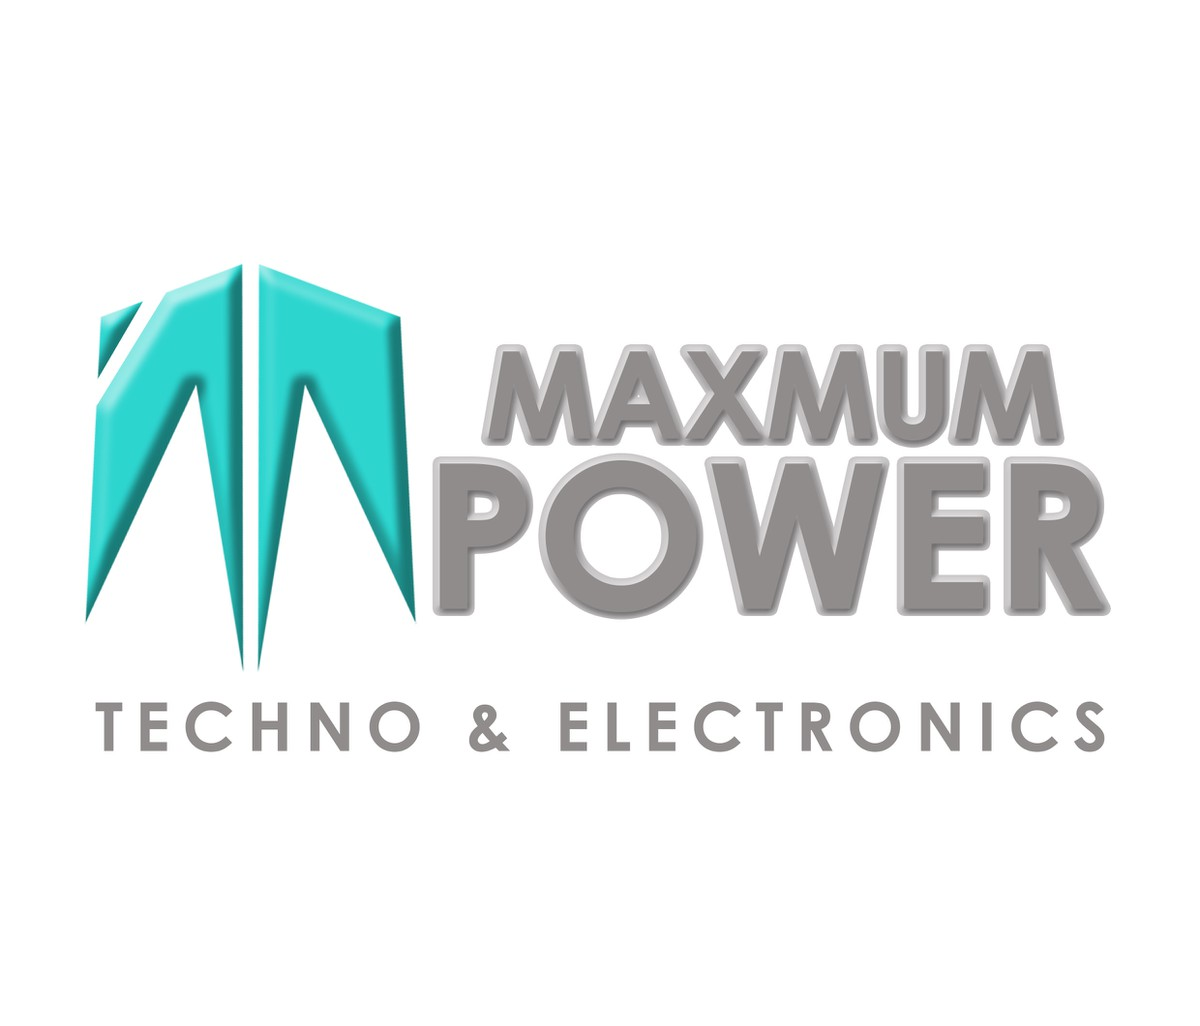 MAX_POWER_LOGO_CONCEPT